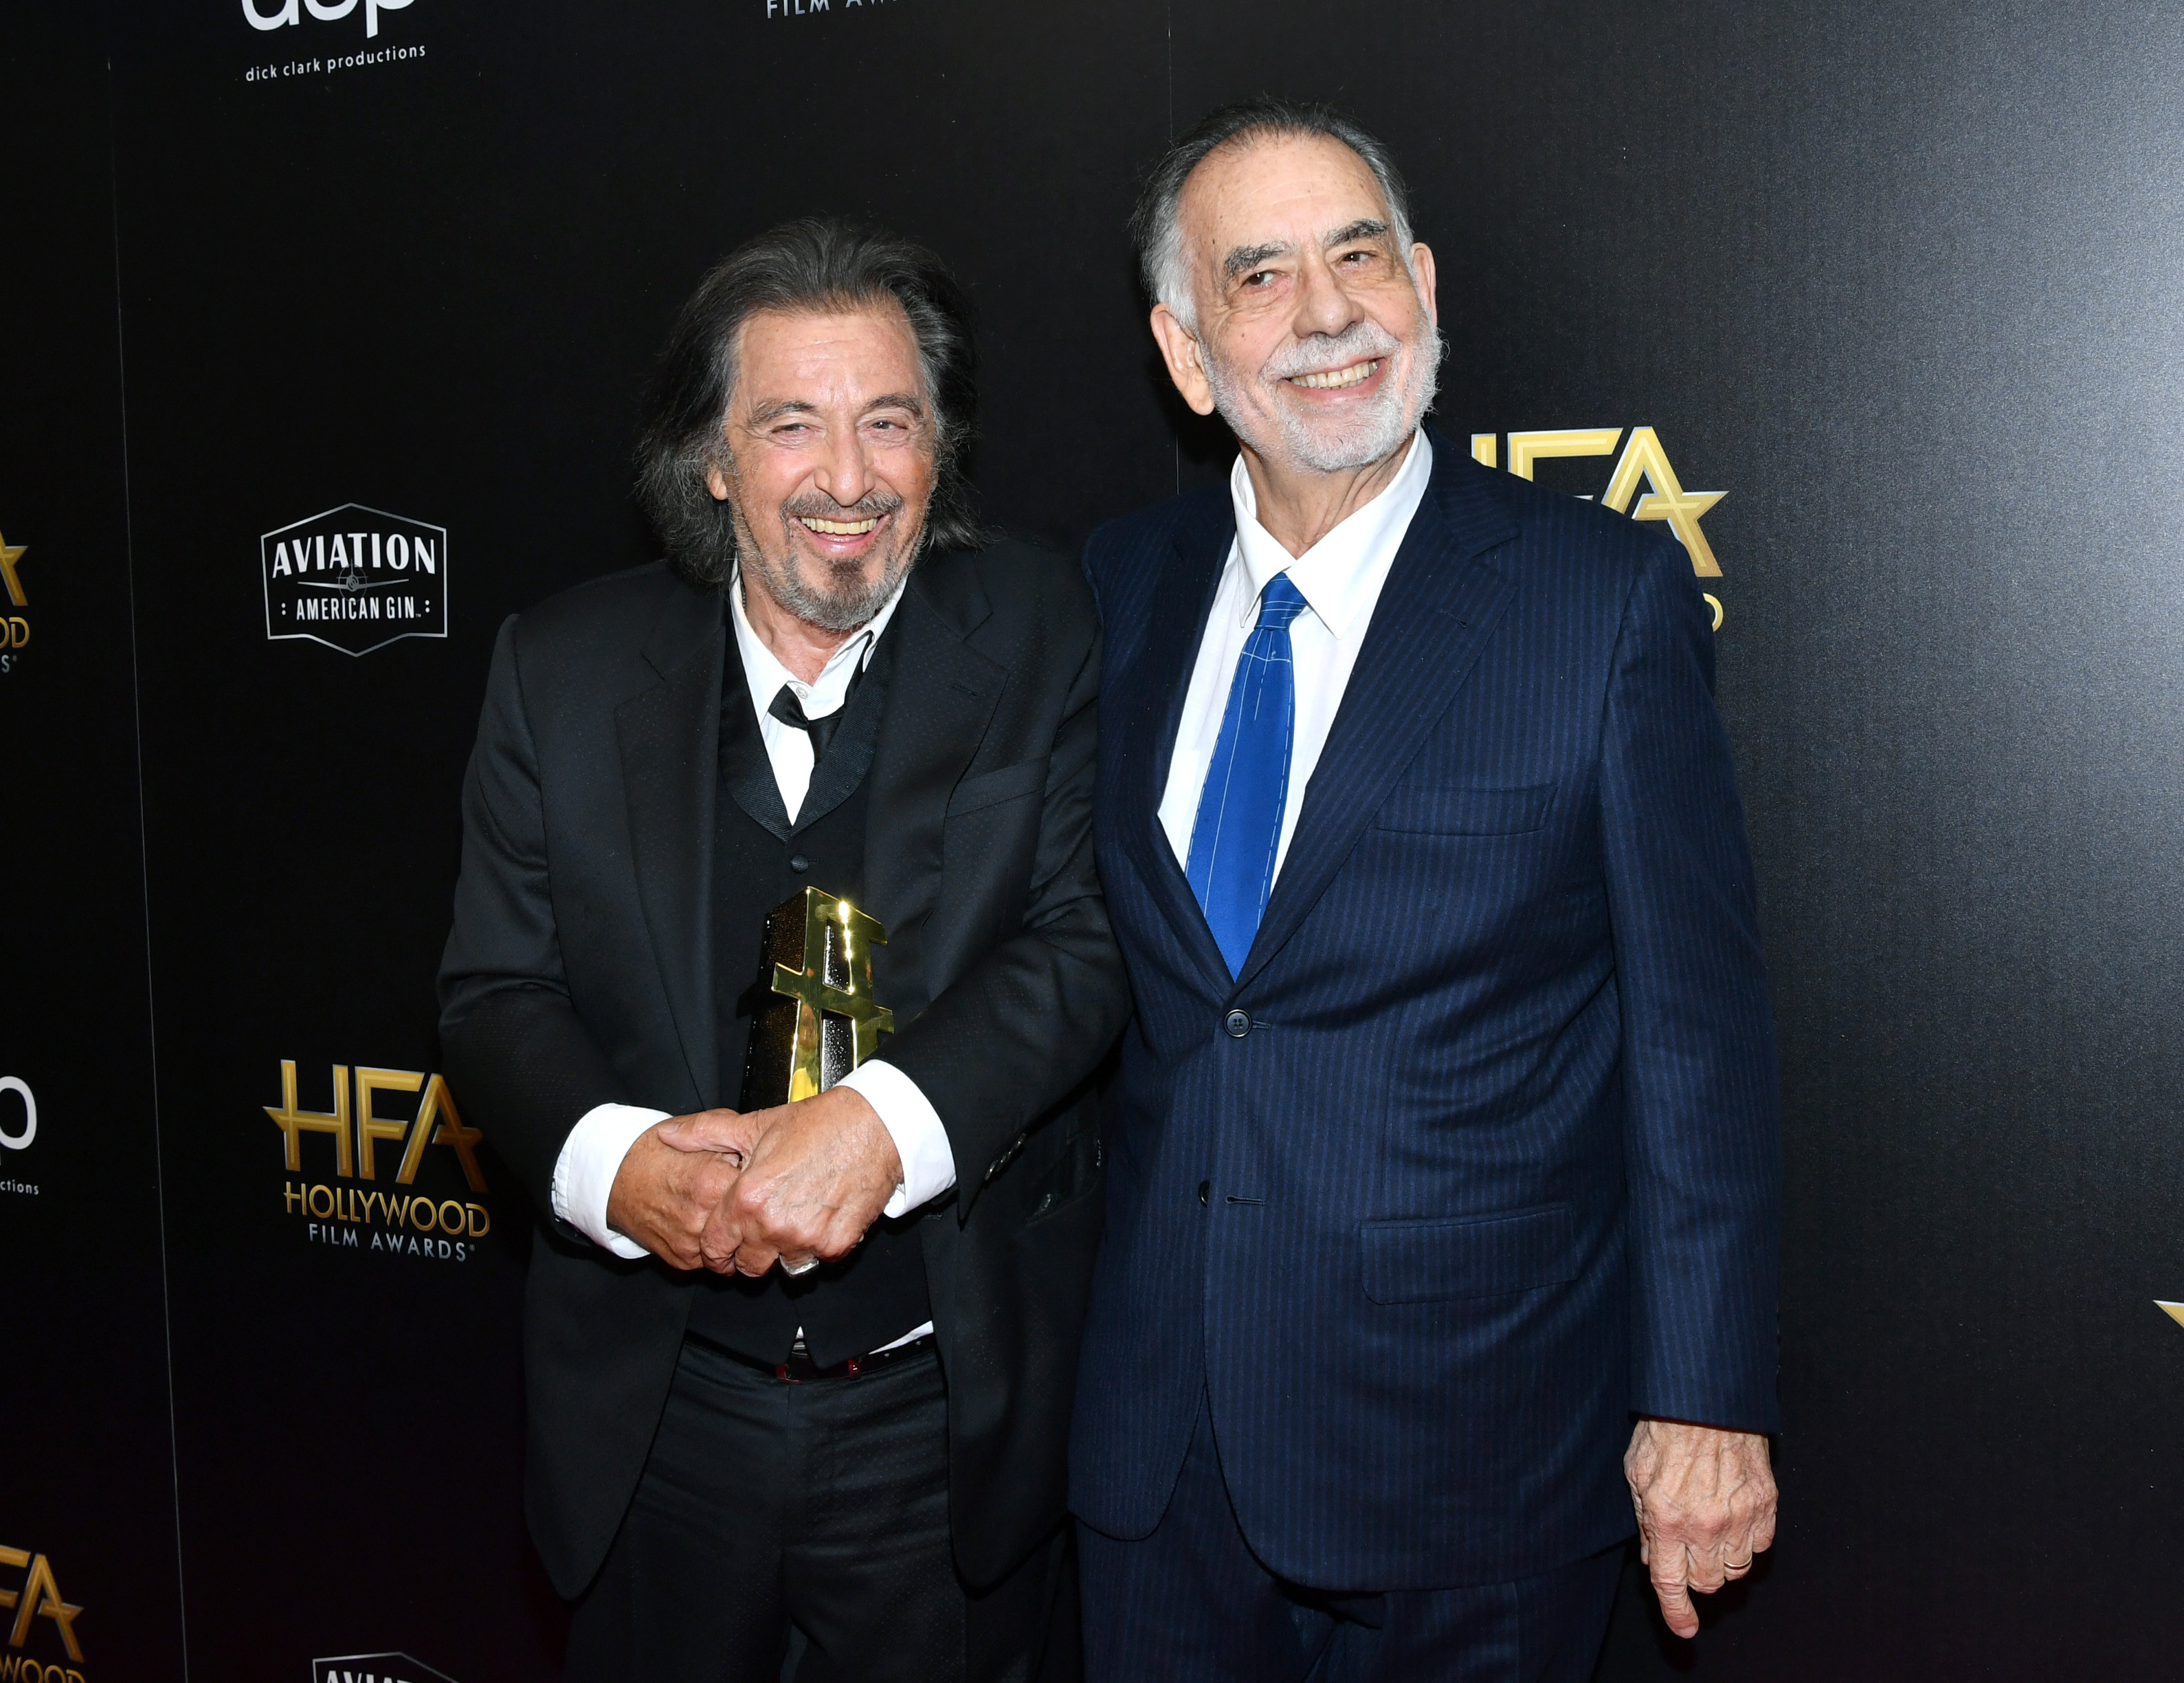 Hollywood Film Awards: Al Pacino Miglior Attore Non Protagonista per The Irishman